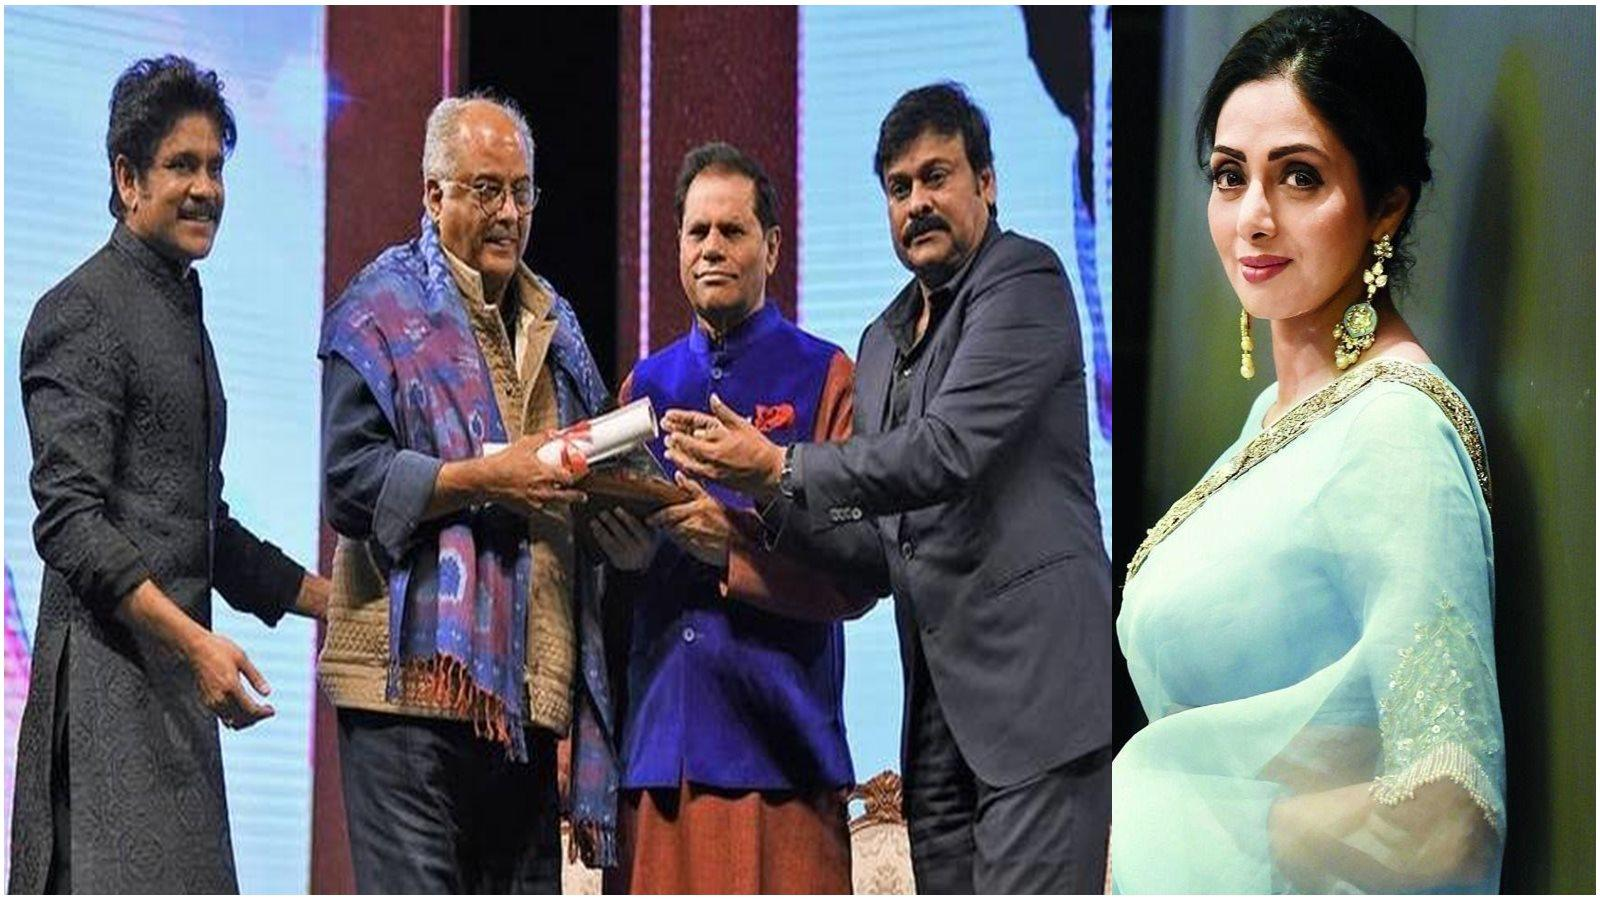 boney-kapoor-breaks-down-while-receiving-anr-national-award-on-behalf-of-wife-and-late-actress-sridevi